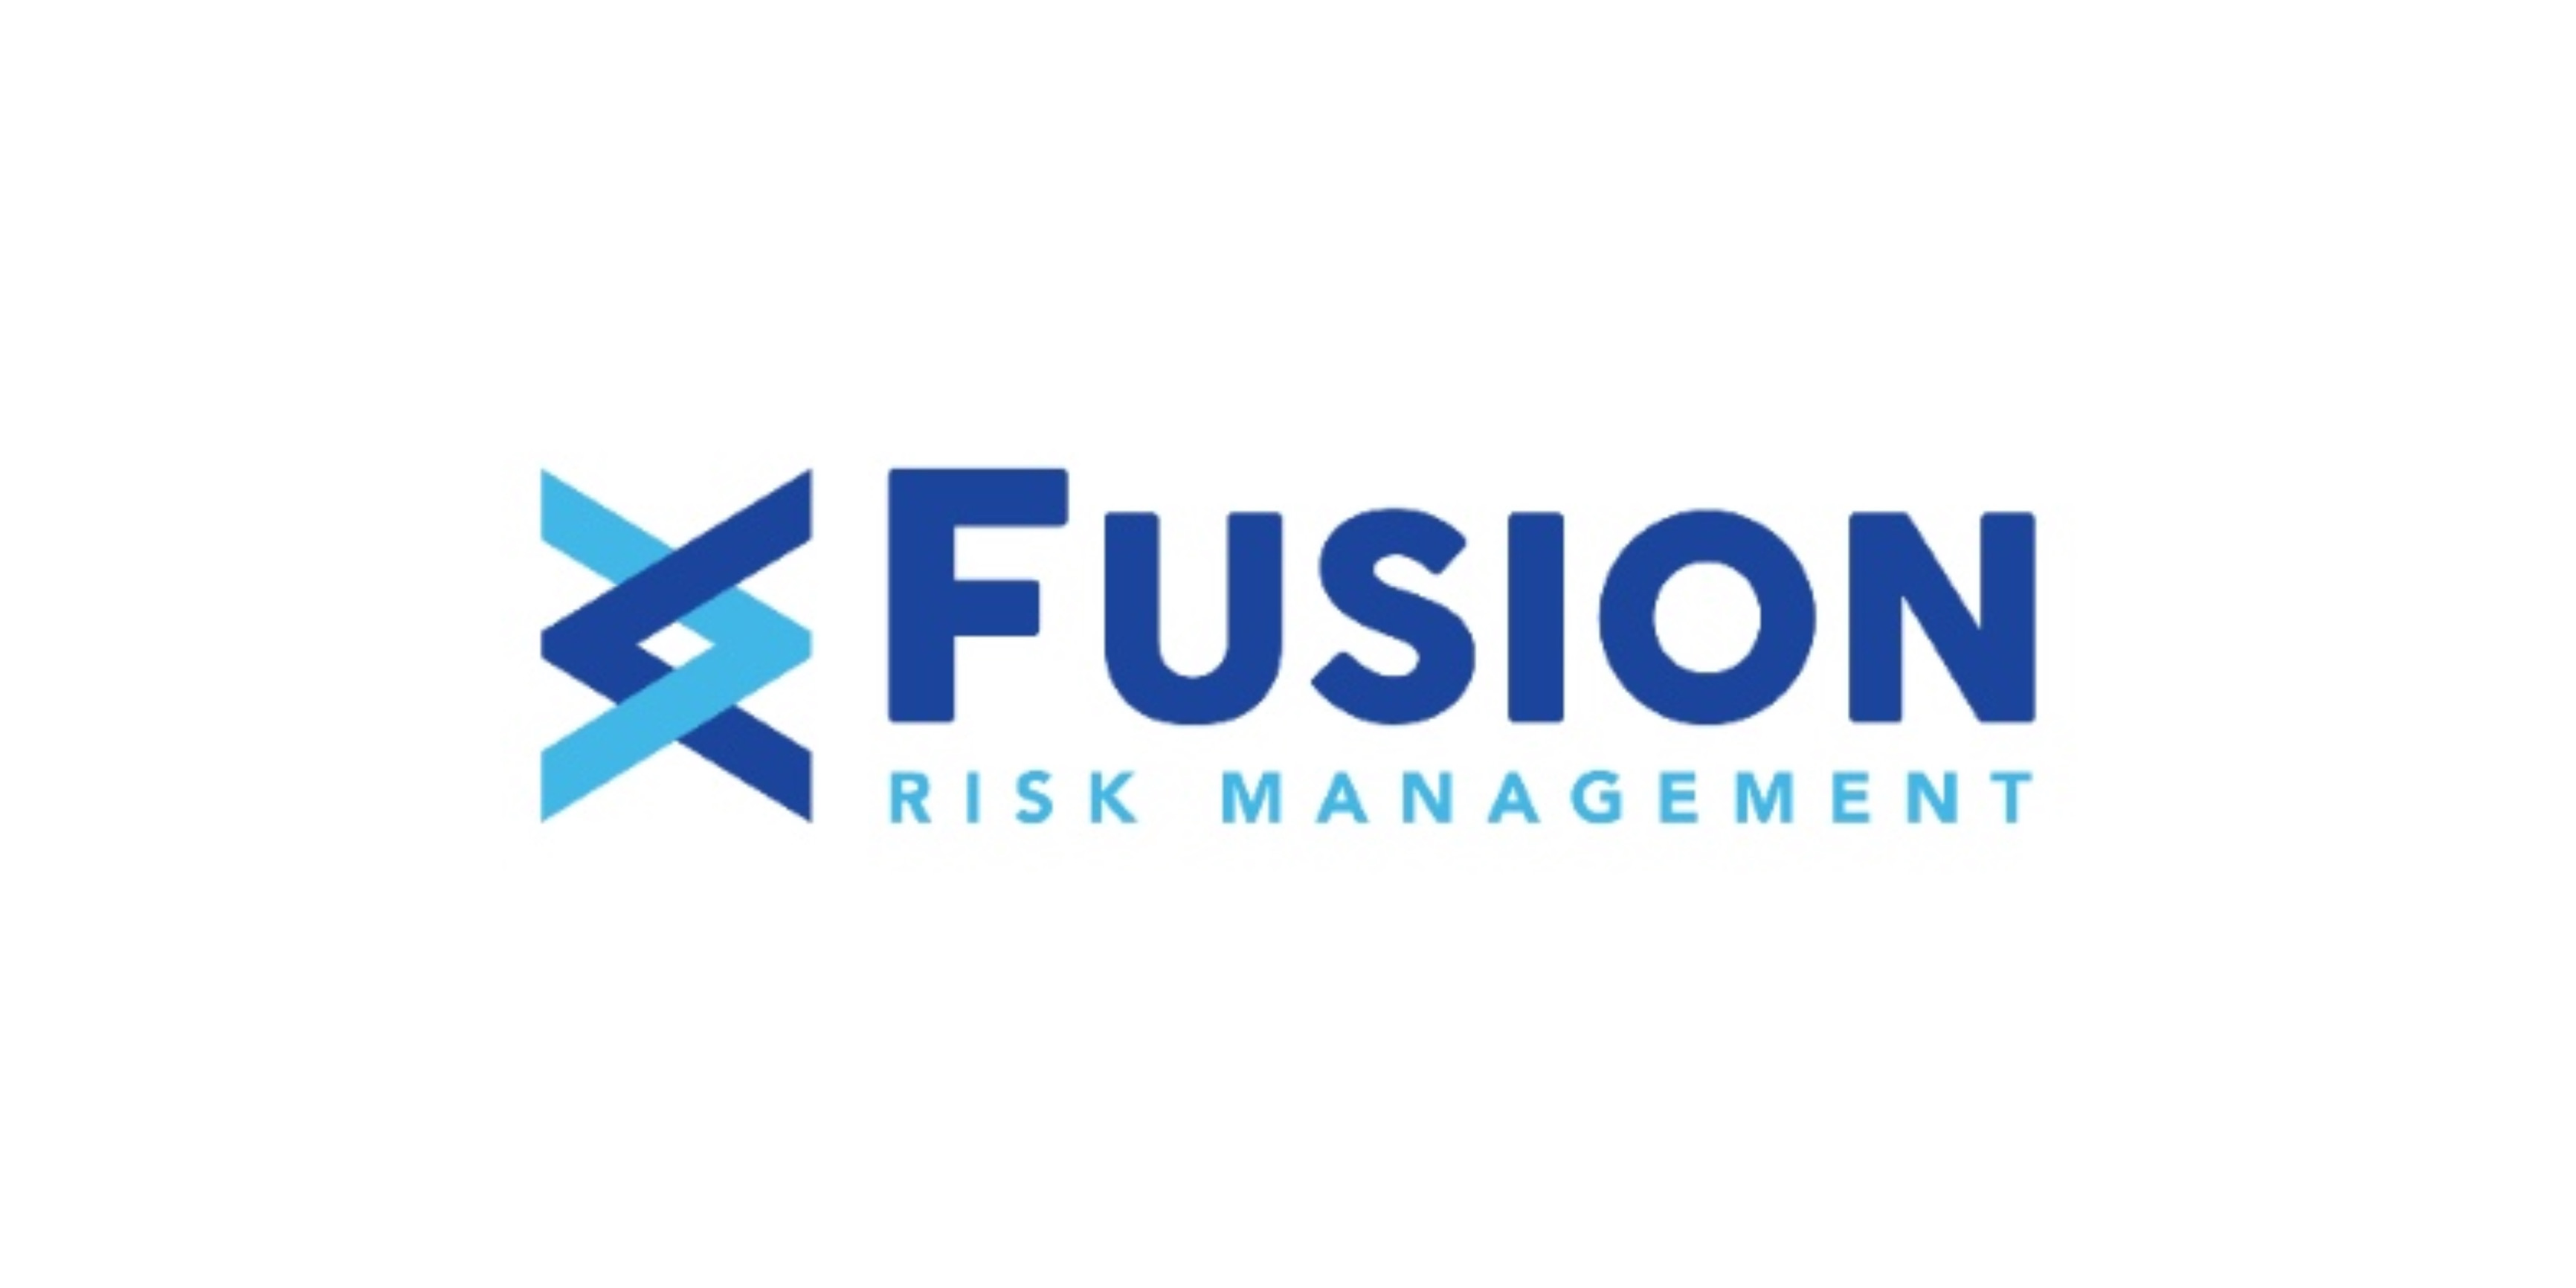 Fusion Risk Management Anticipates and Exceeds Needs of Financial Institutions Ahead of New Operational Resilience Regulations